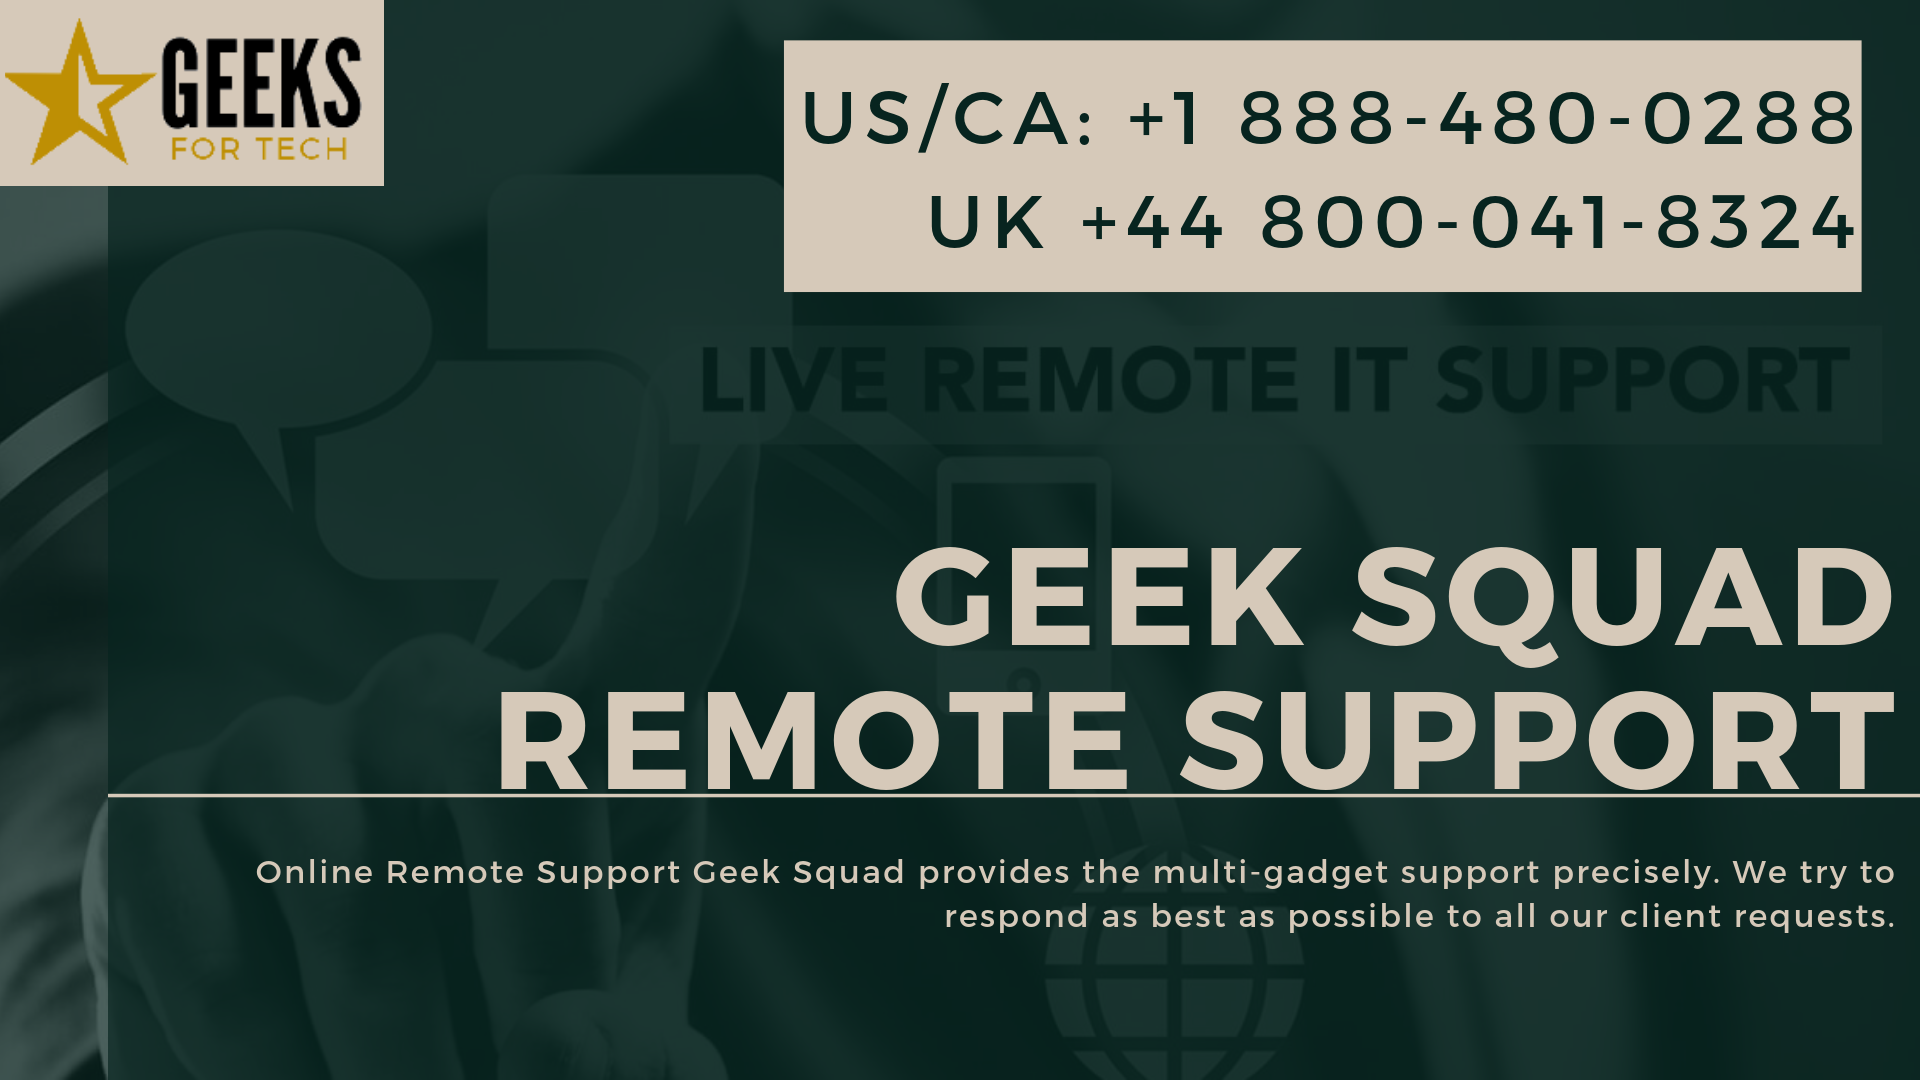 Geek Squad remote supports the leading tech support